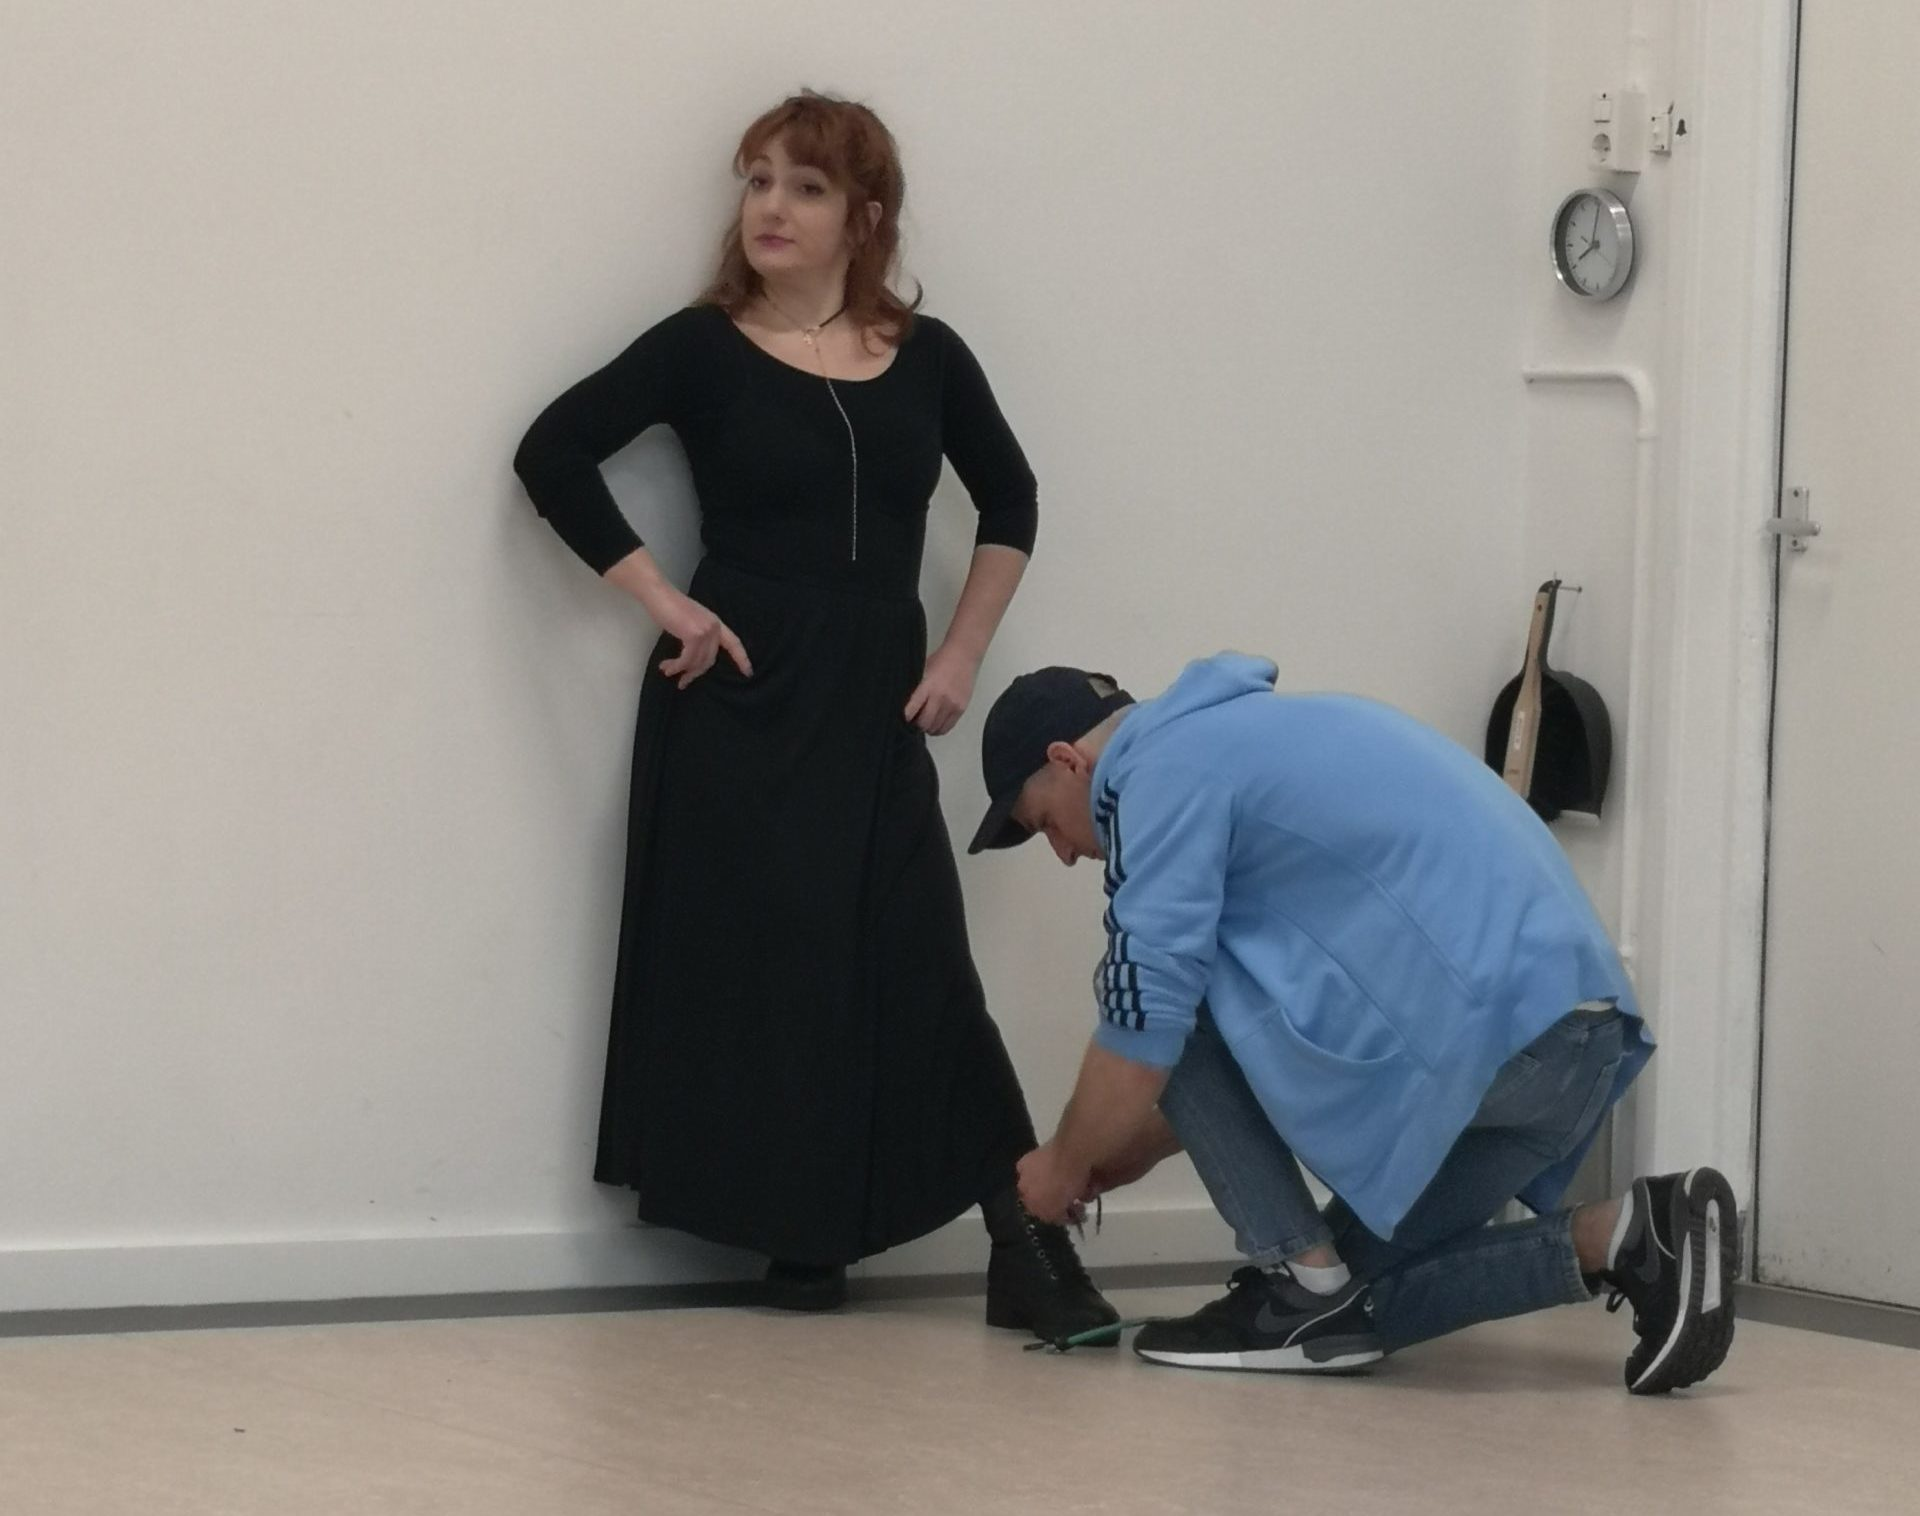 Acting Class Act Attack. Red-haired girl with black dress, her back against the wall, her arms on her waist. A man with a light blue jacket is kneeled infront of her, tying her shoe.